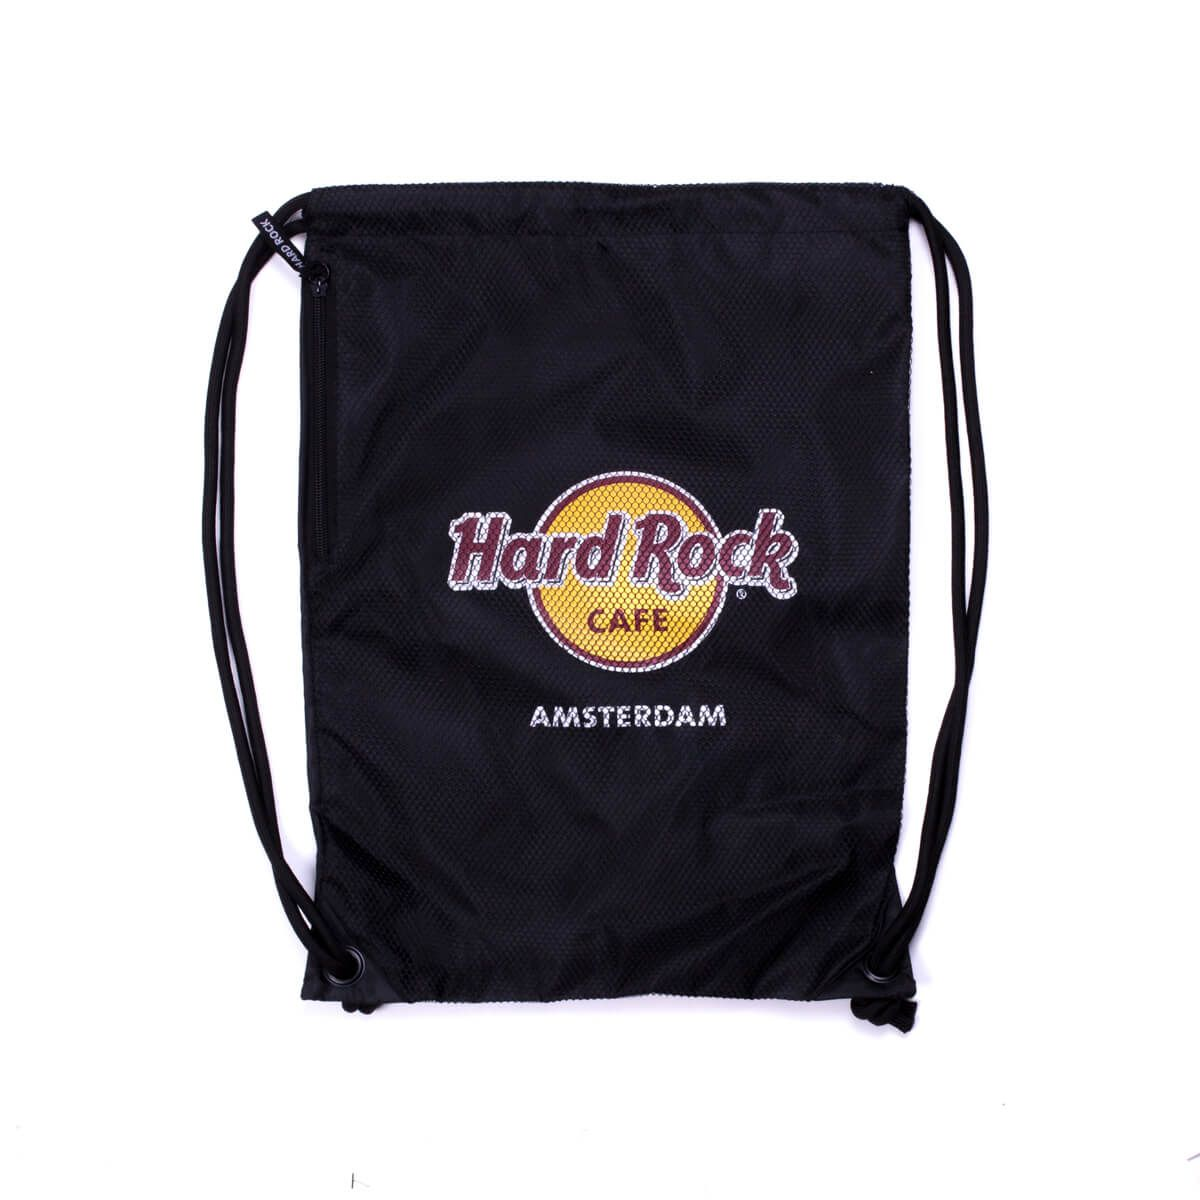 Hard Rock Logo Drawstring Backpack.